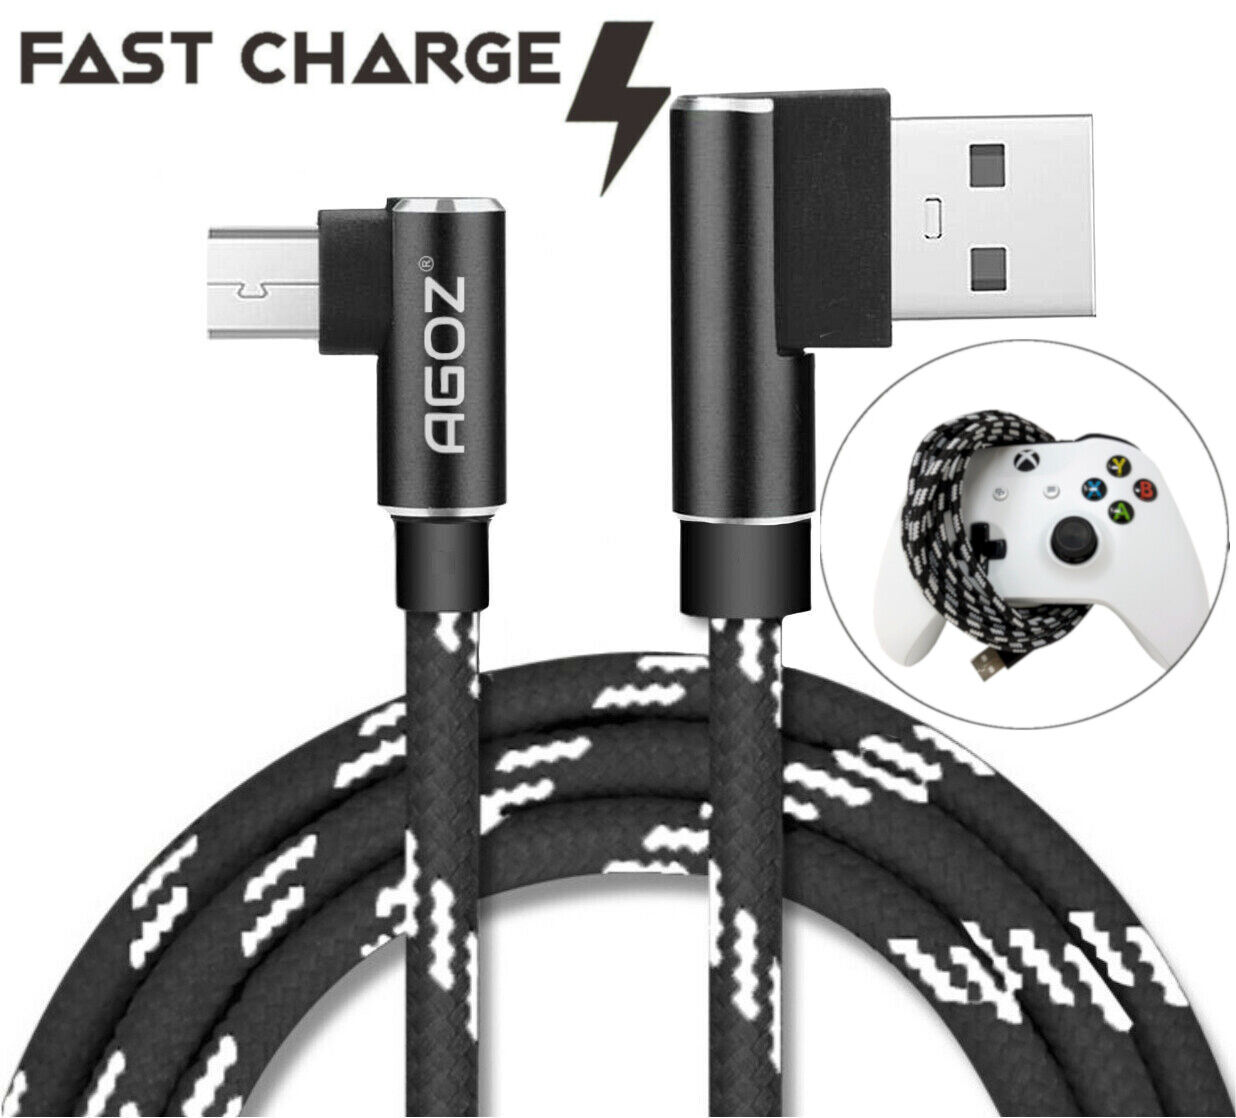 L Shape 90 Degree 4,6,10ft Micro USB Cable For Xbox One, One X, One S Controller - $5.98